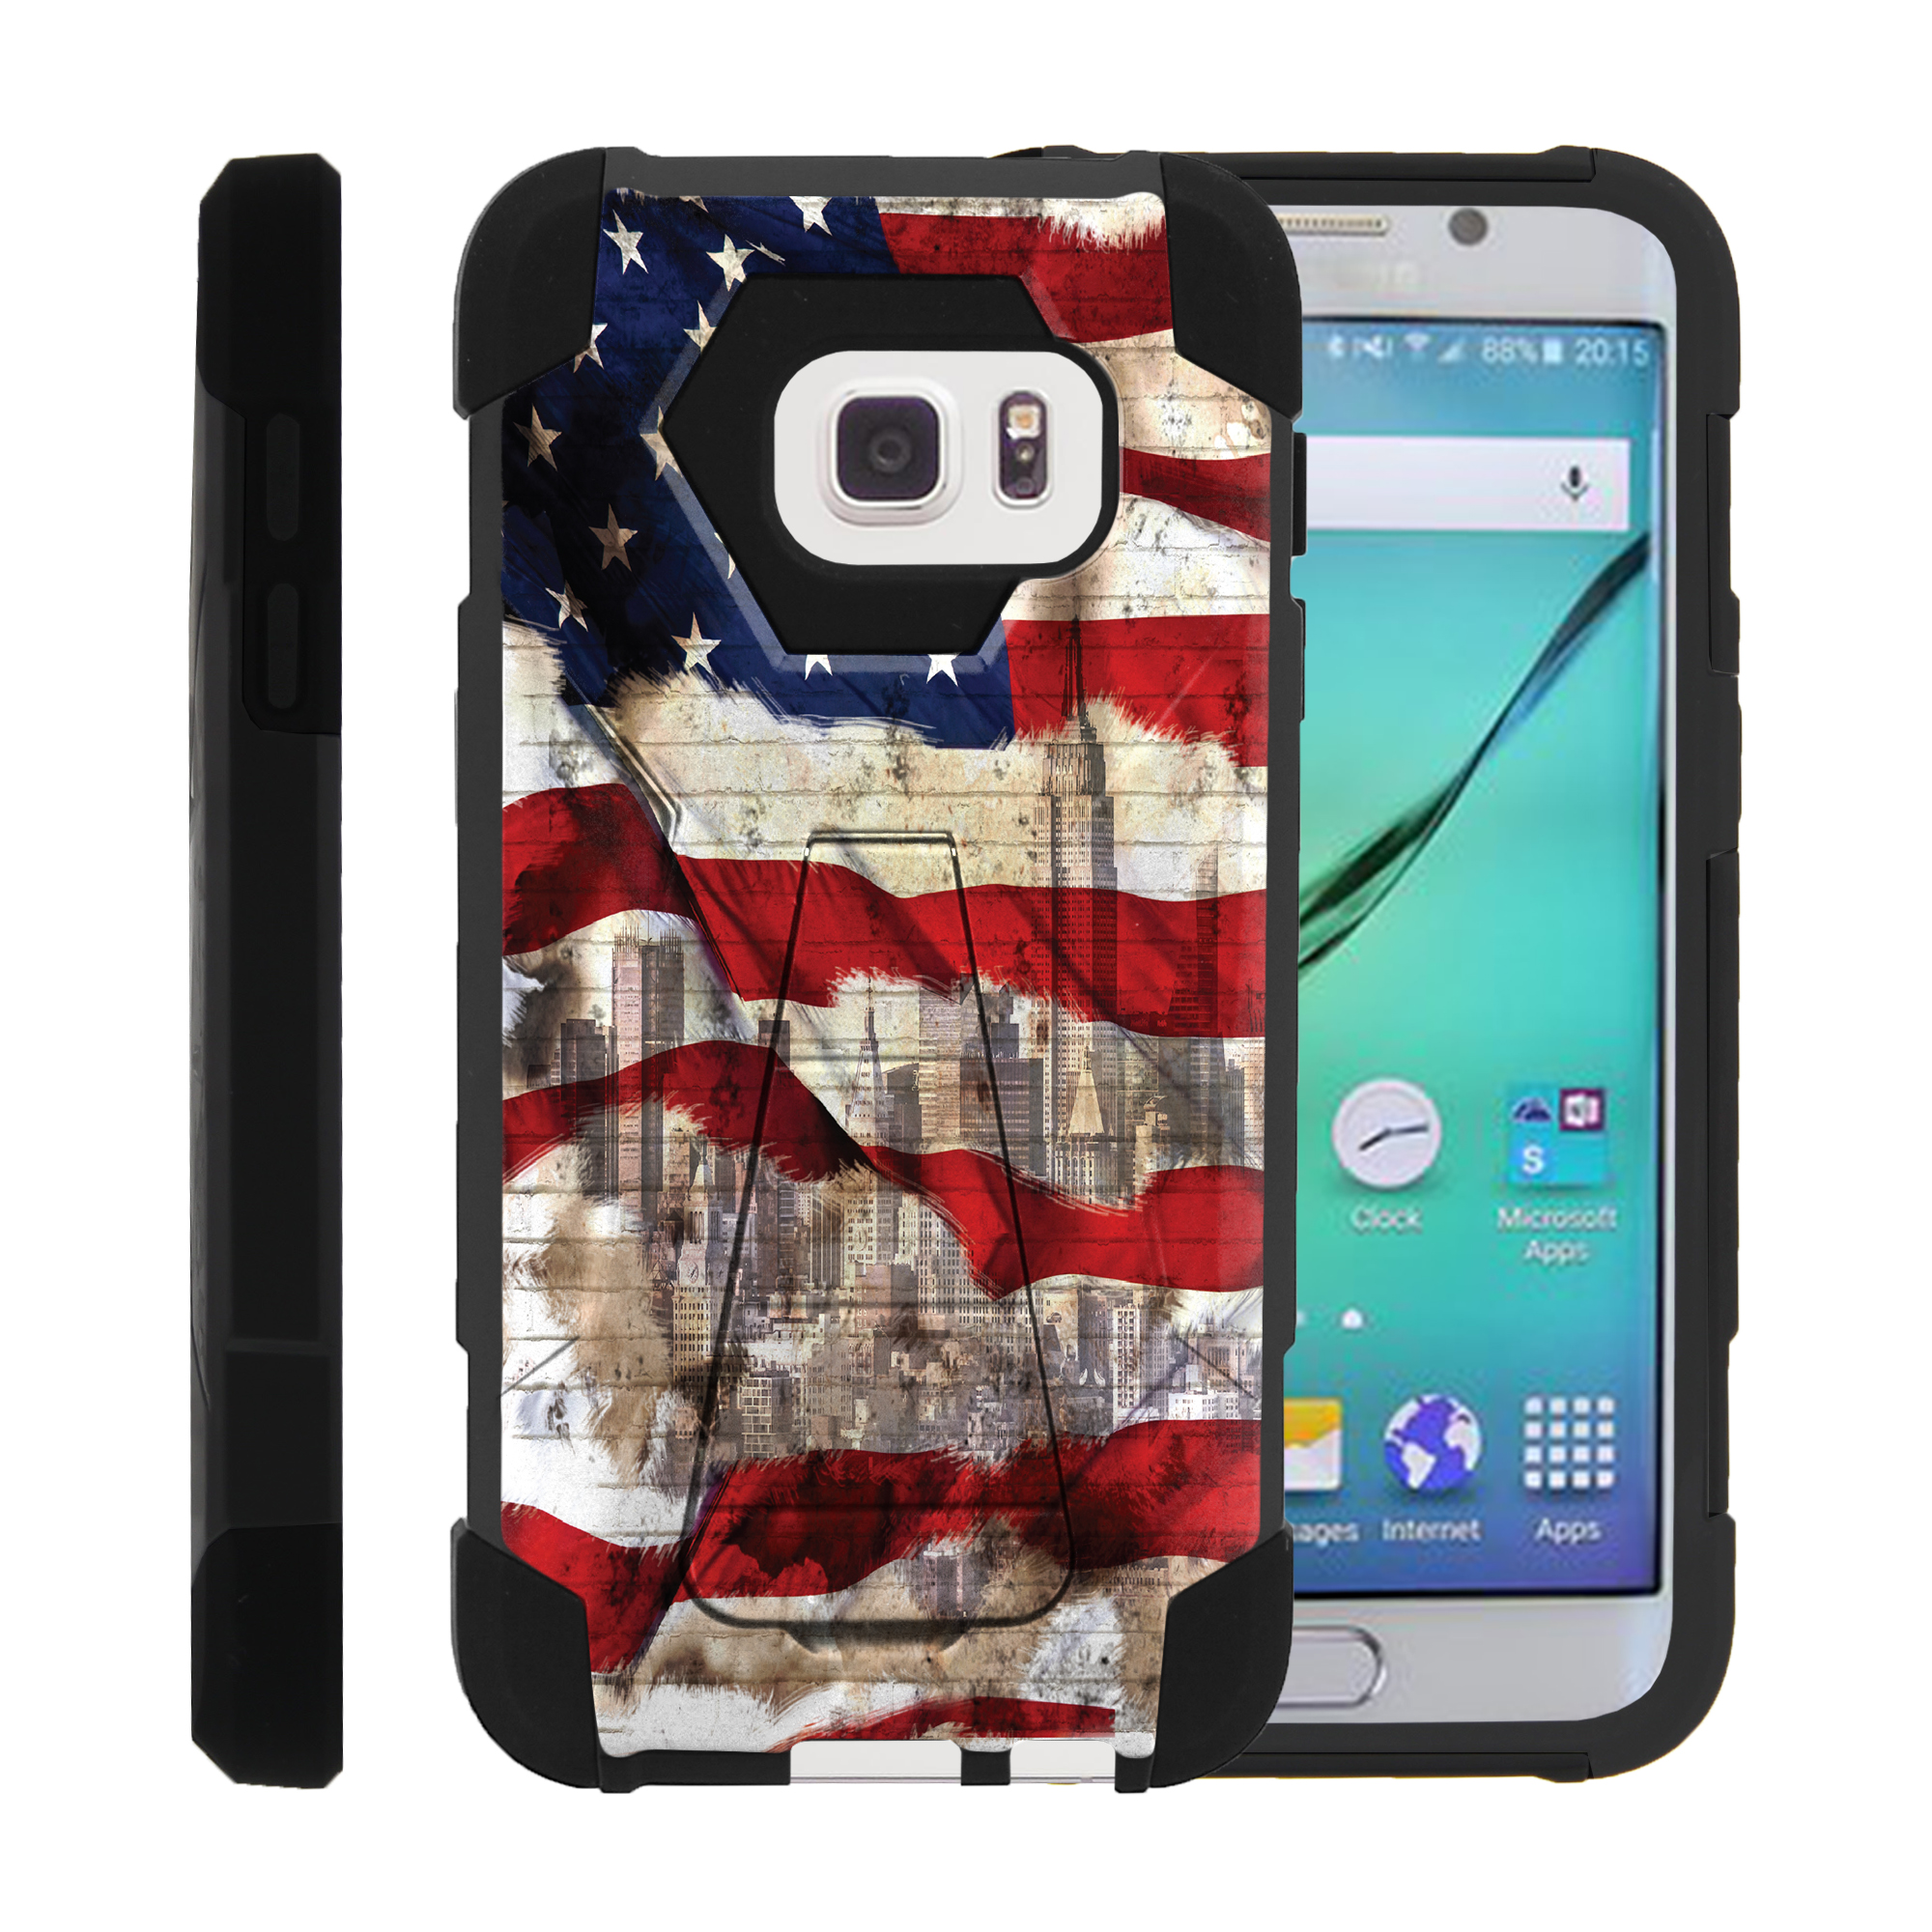 Case for Samsung S7 | S7 Hybrid Cover [ Shock Fusion ] High Impact Shock Resistant Shell Case + Kickstand - New York USA Flag